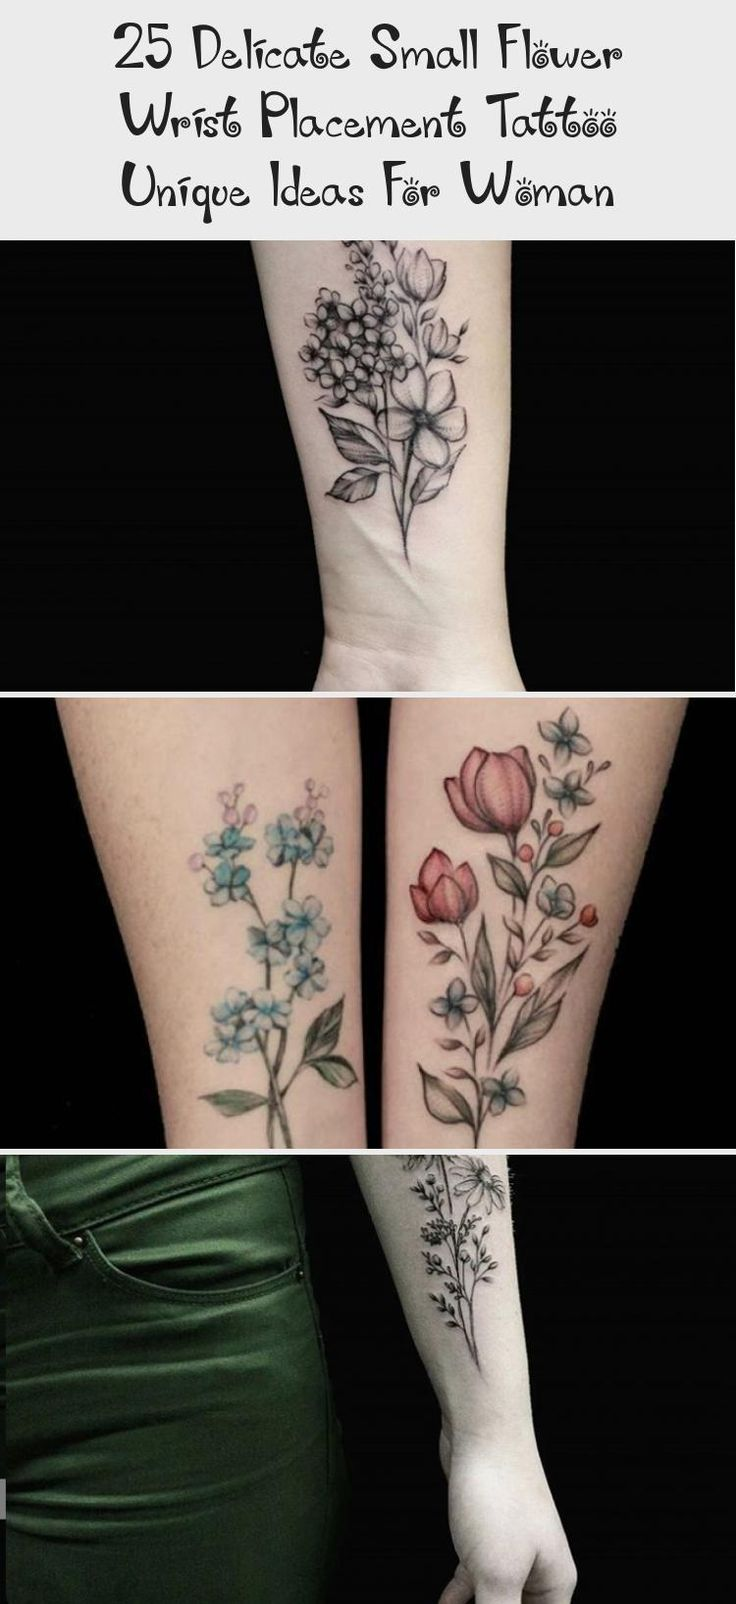 25 Delicate Small Flower Wrist Placement Tattoo Unique